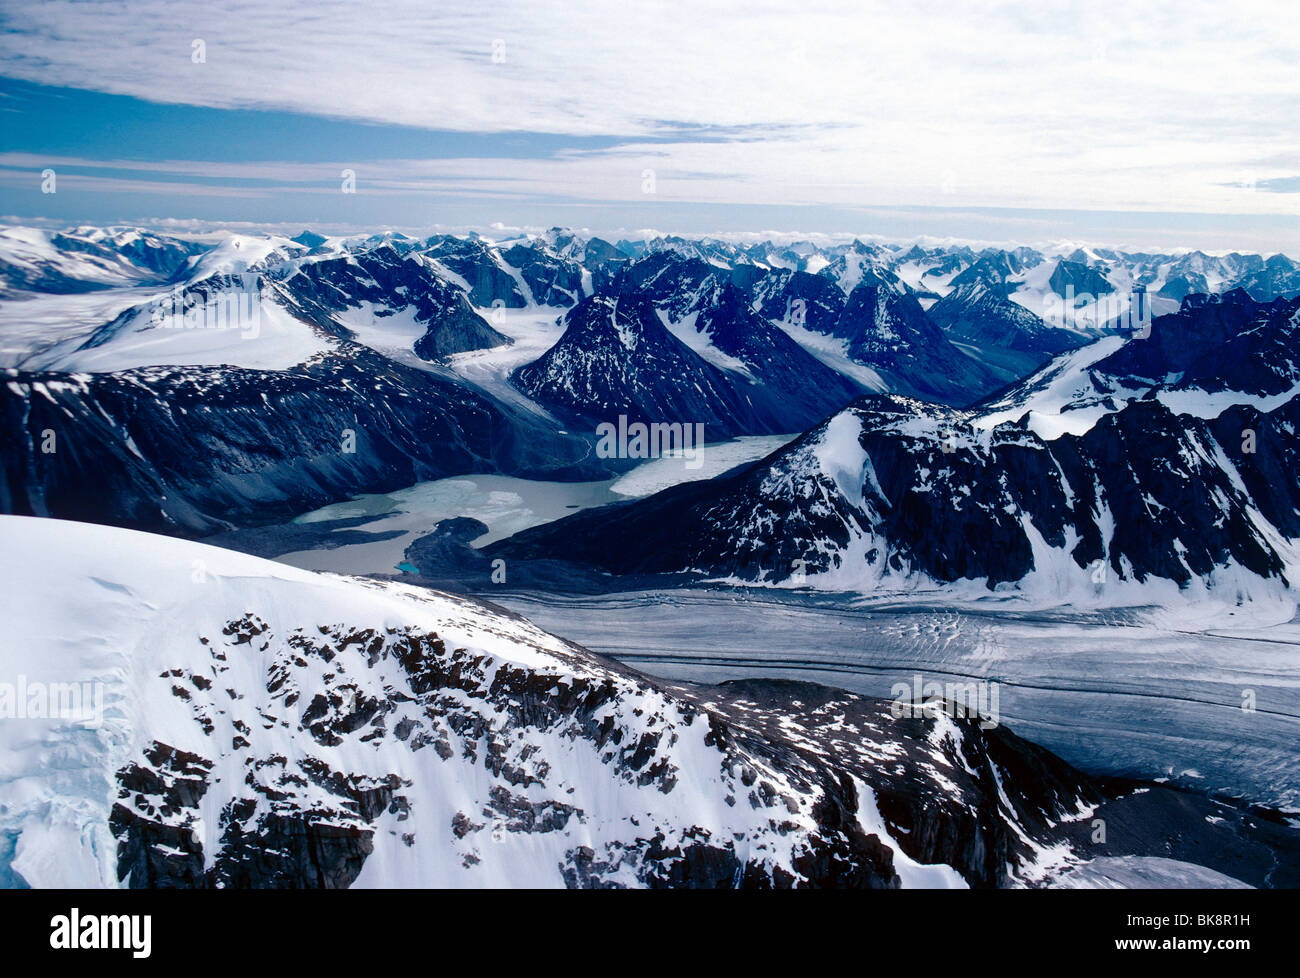 Aerial view of Mt. Alvit and the Turner Glacier, Auyuittuq National Park, Baffin Island, Nunavut, Canada Stock Photo